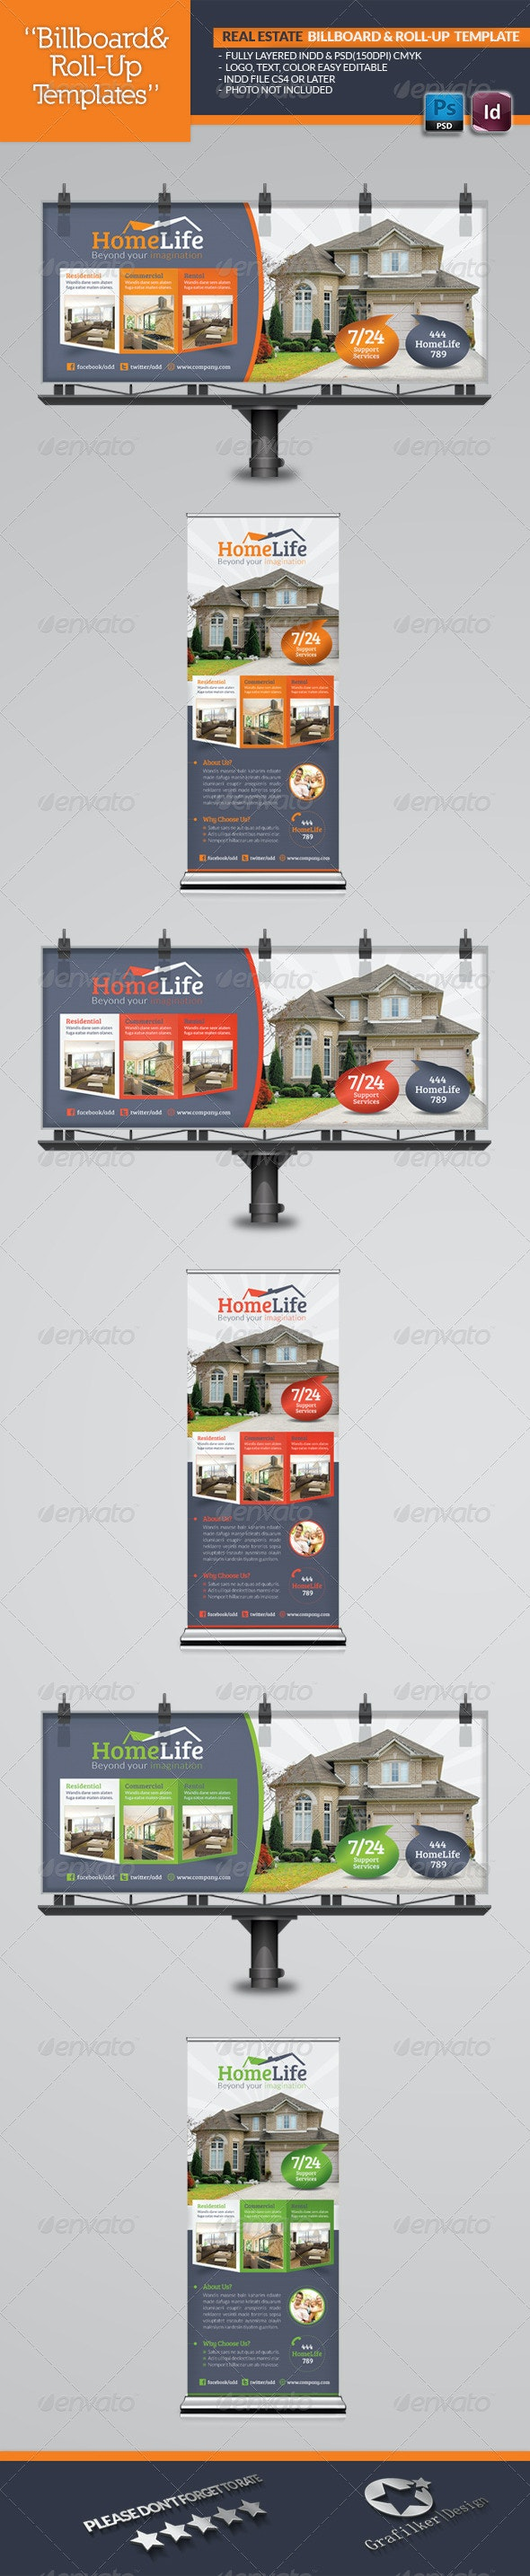 Real Estate Billboard & Roll-Up Template - Signage Print Templates